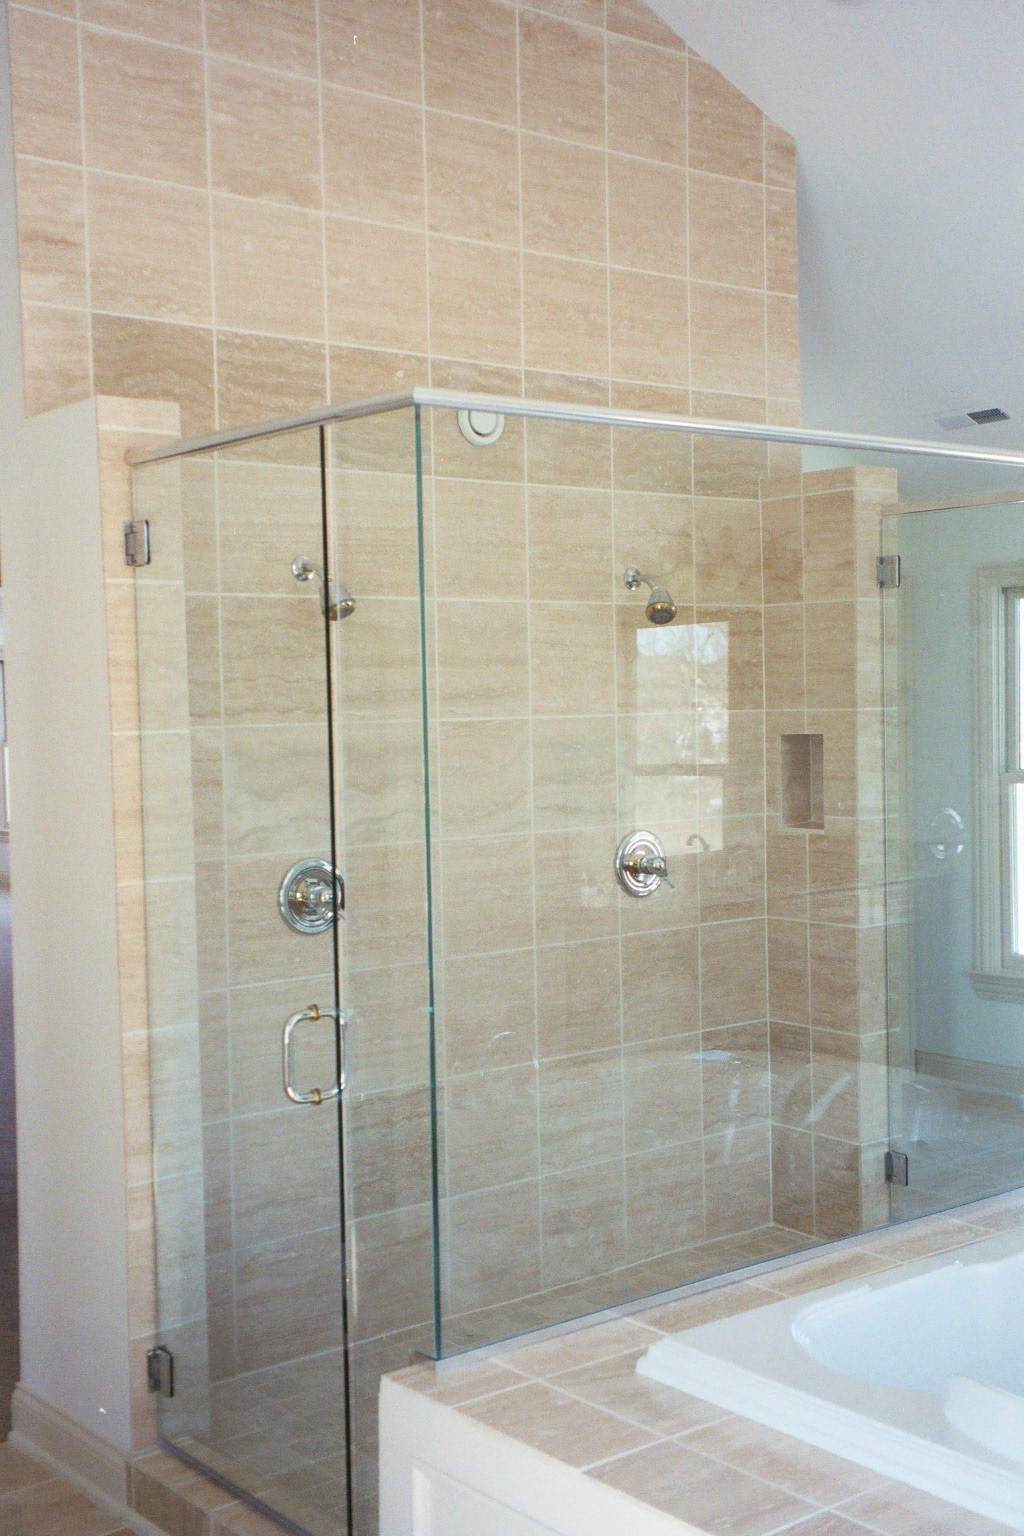 Backsplash picture ideas custom shower and tub deck stone for Custom tubs and showers